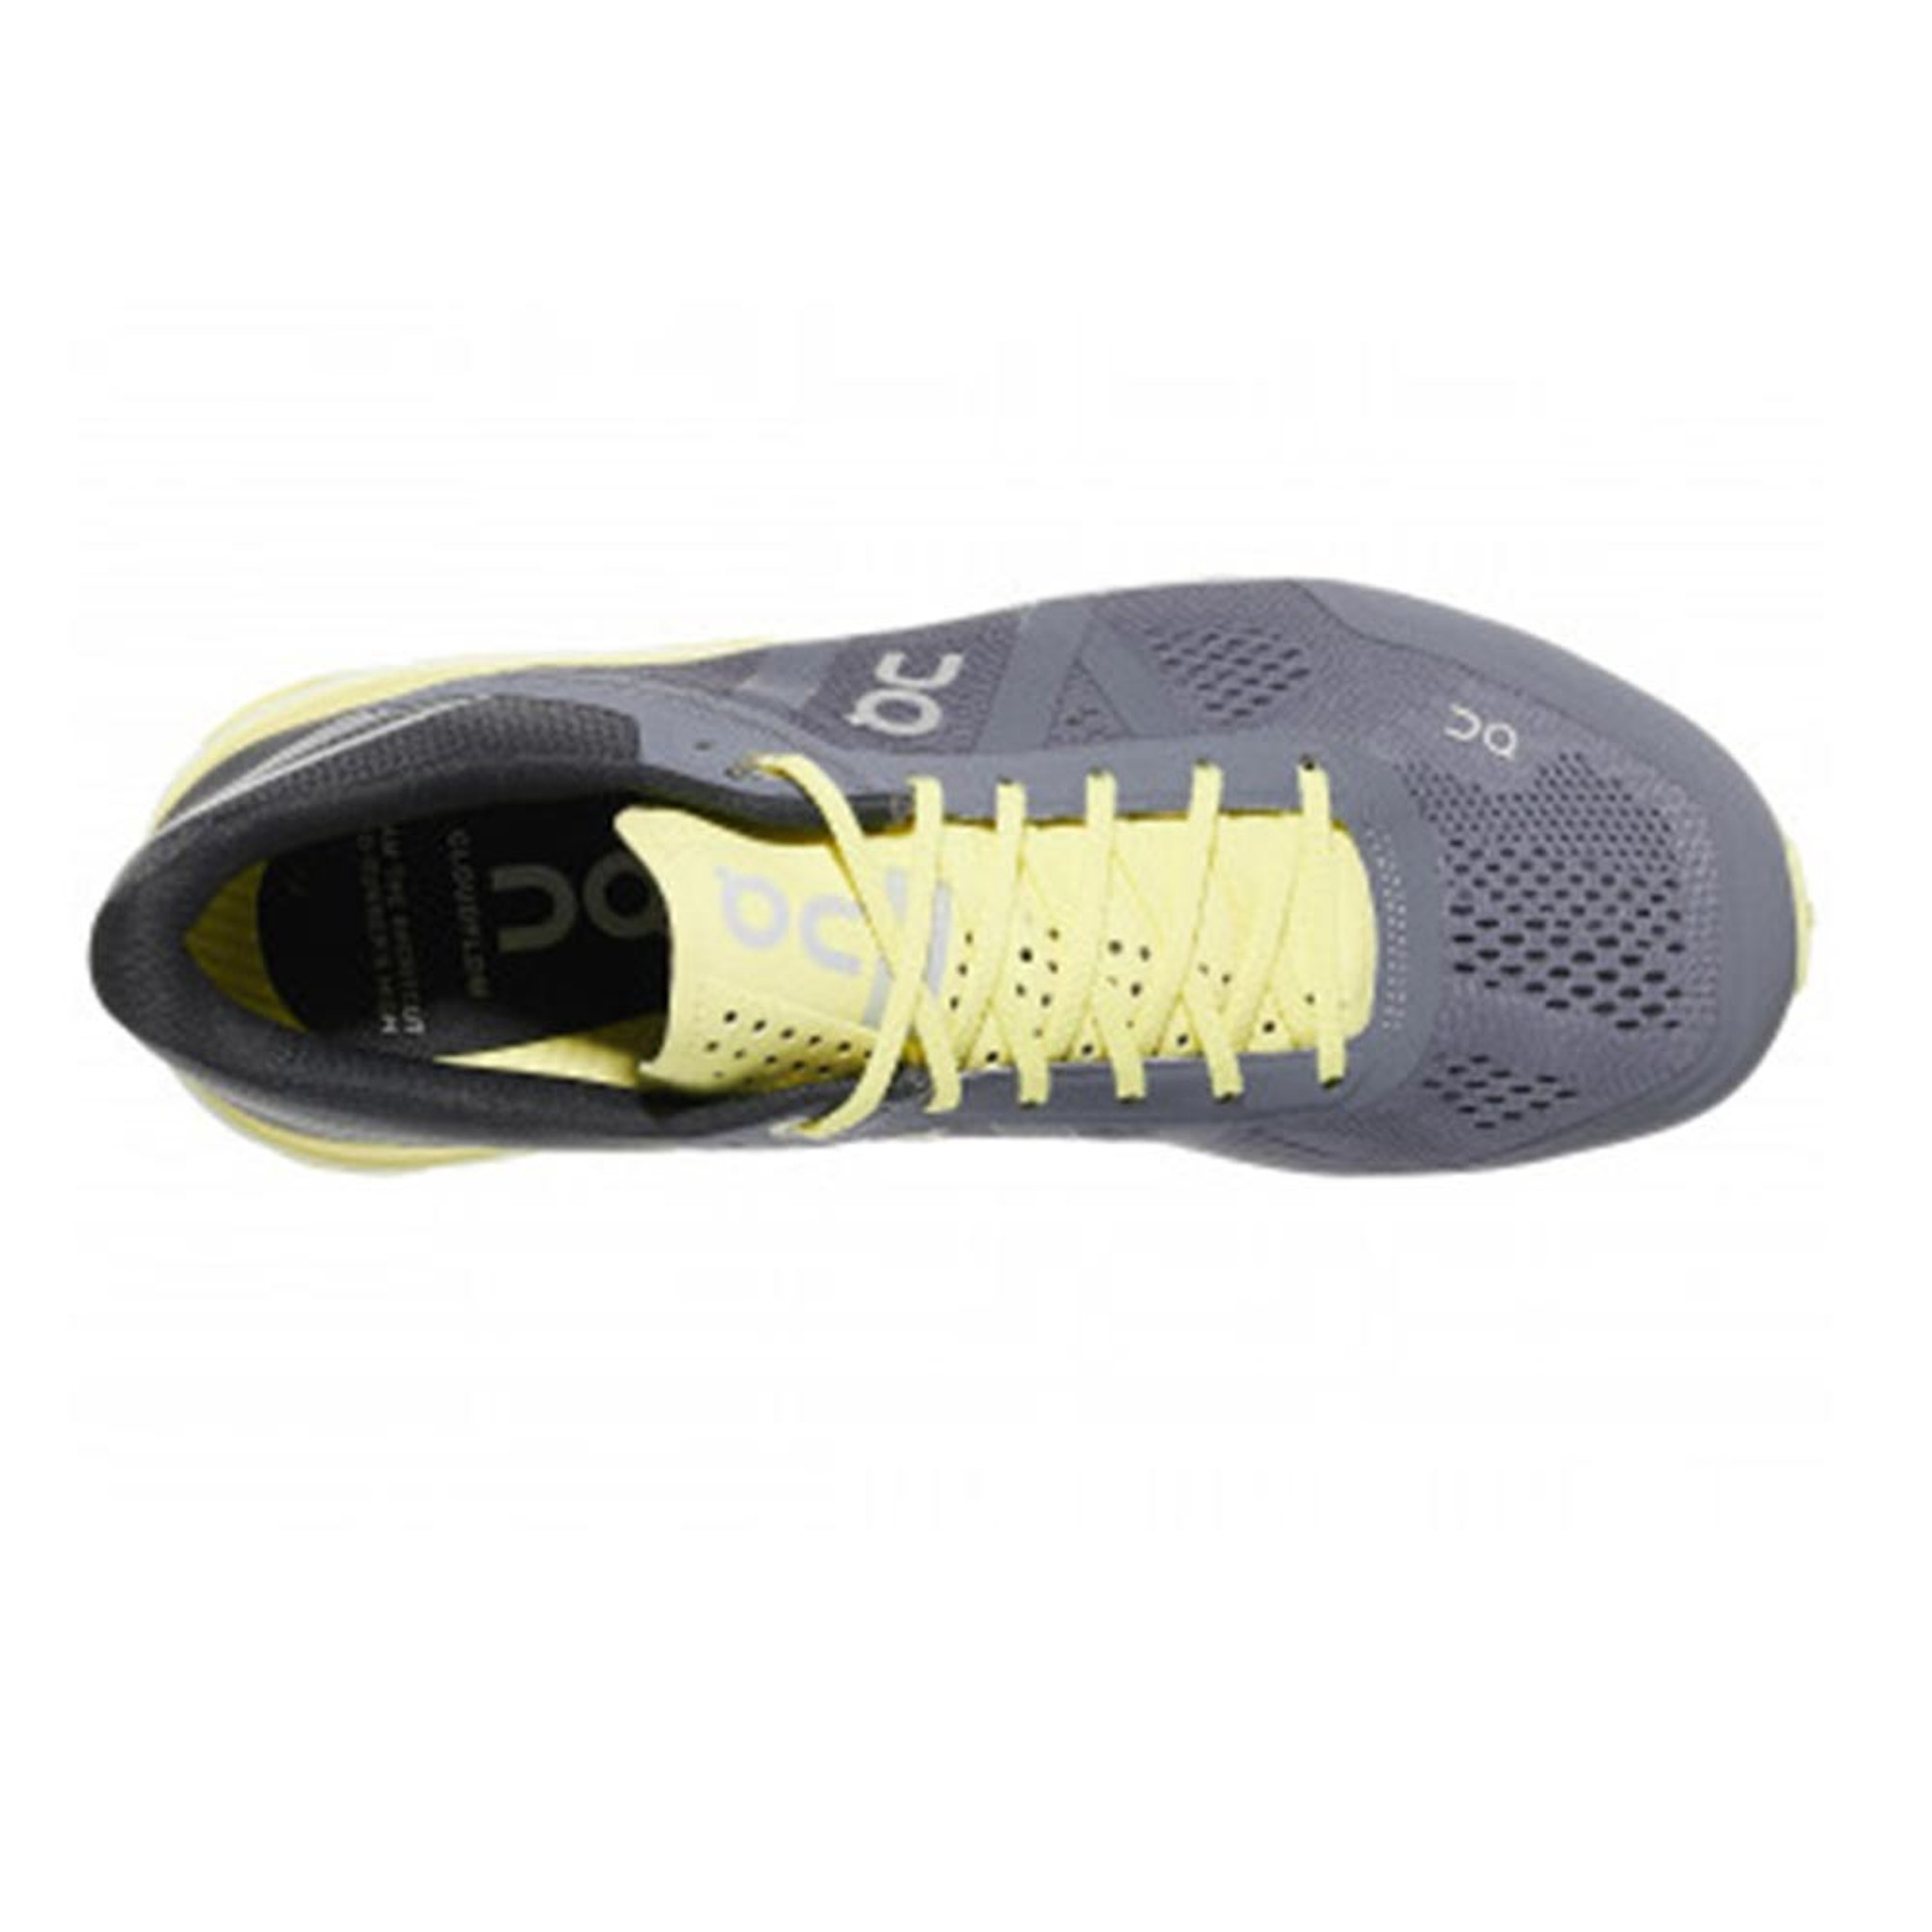 official photos 0c7f3 1846f On Running Cloudflow Women Smoke/Limelight